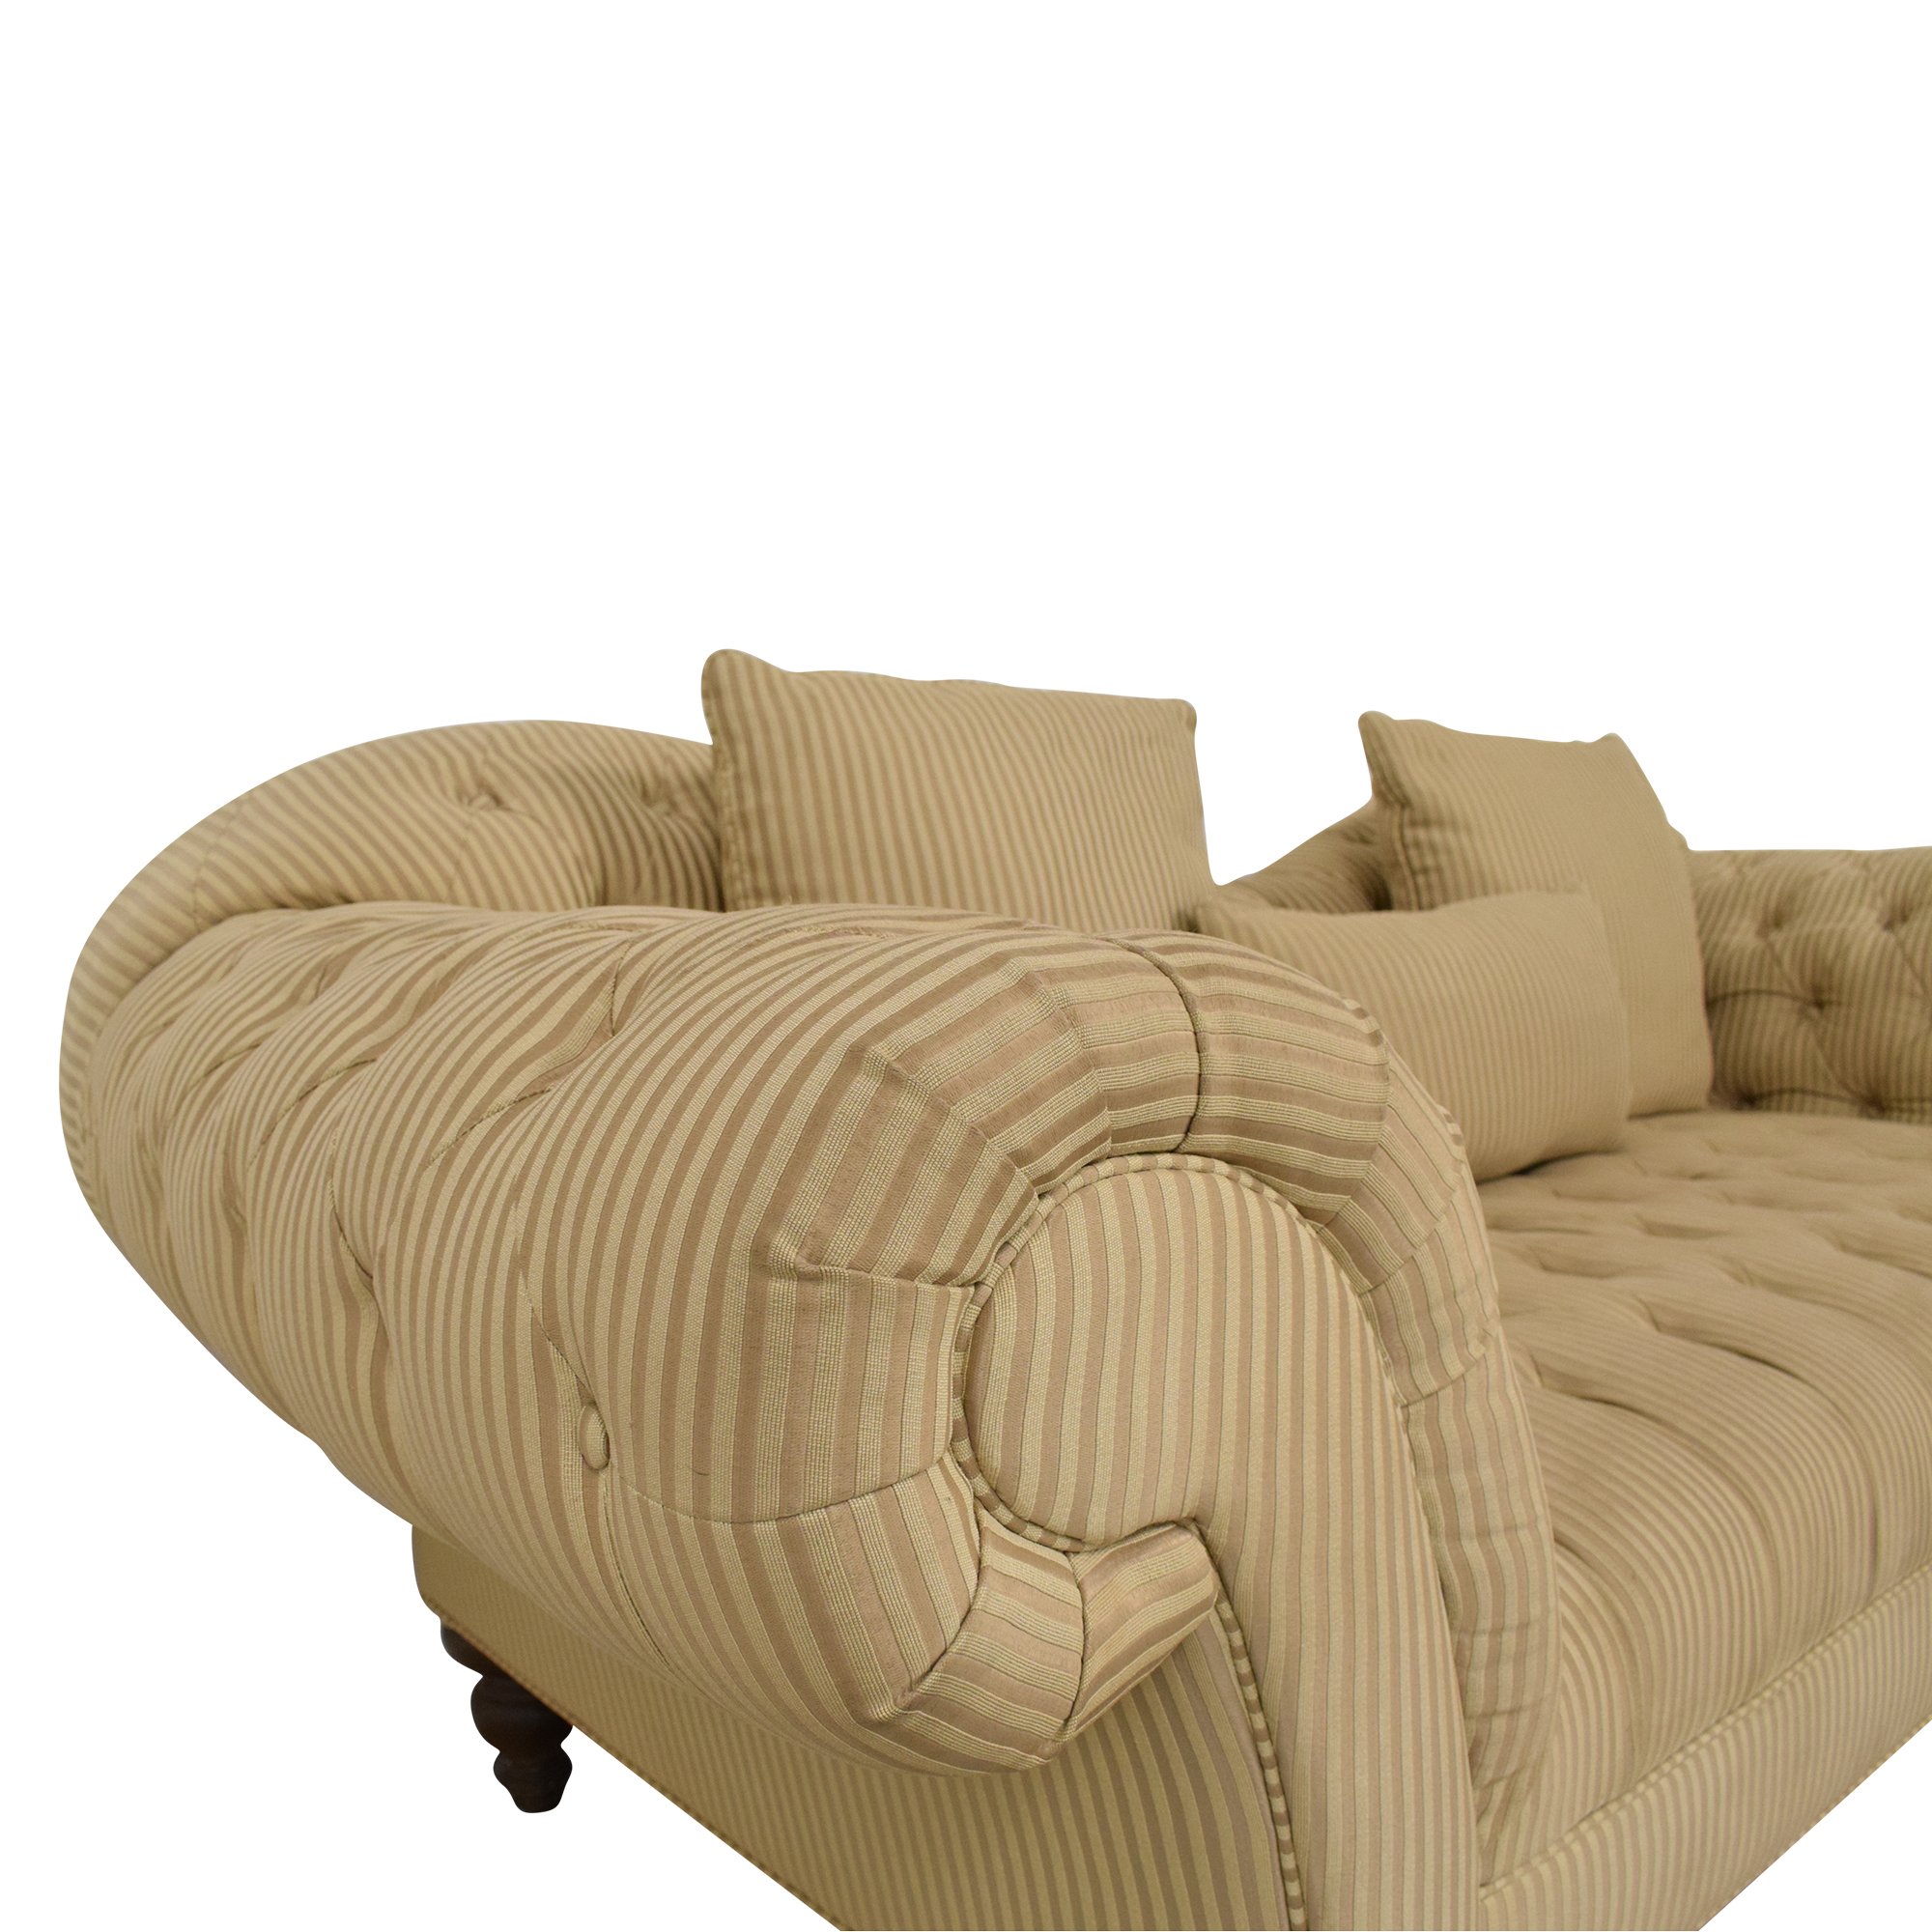 Rooms To Go Rooms To Go Tufted Roll Arm Chesterfield Sofa on sale